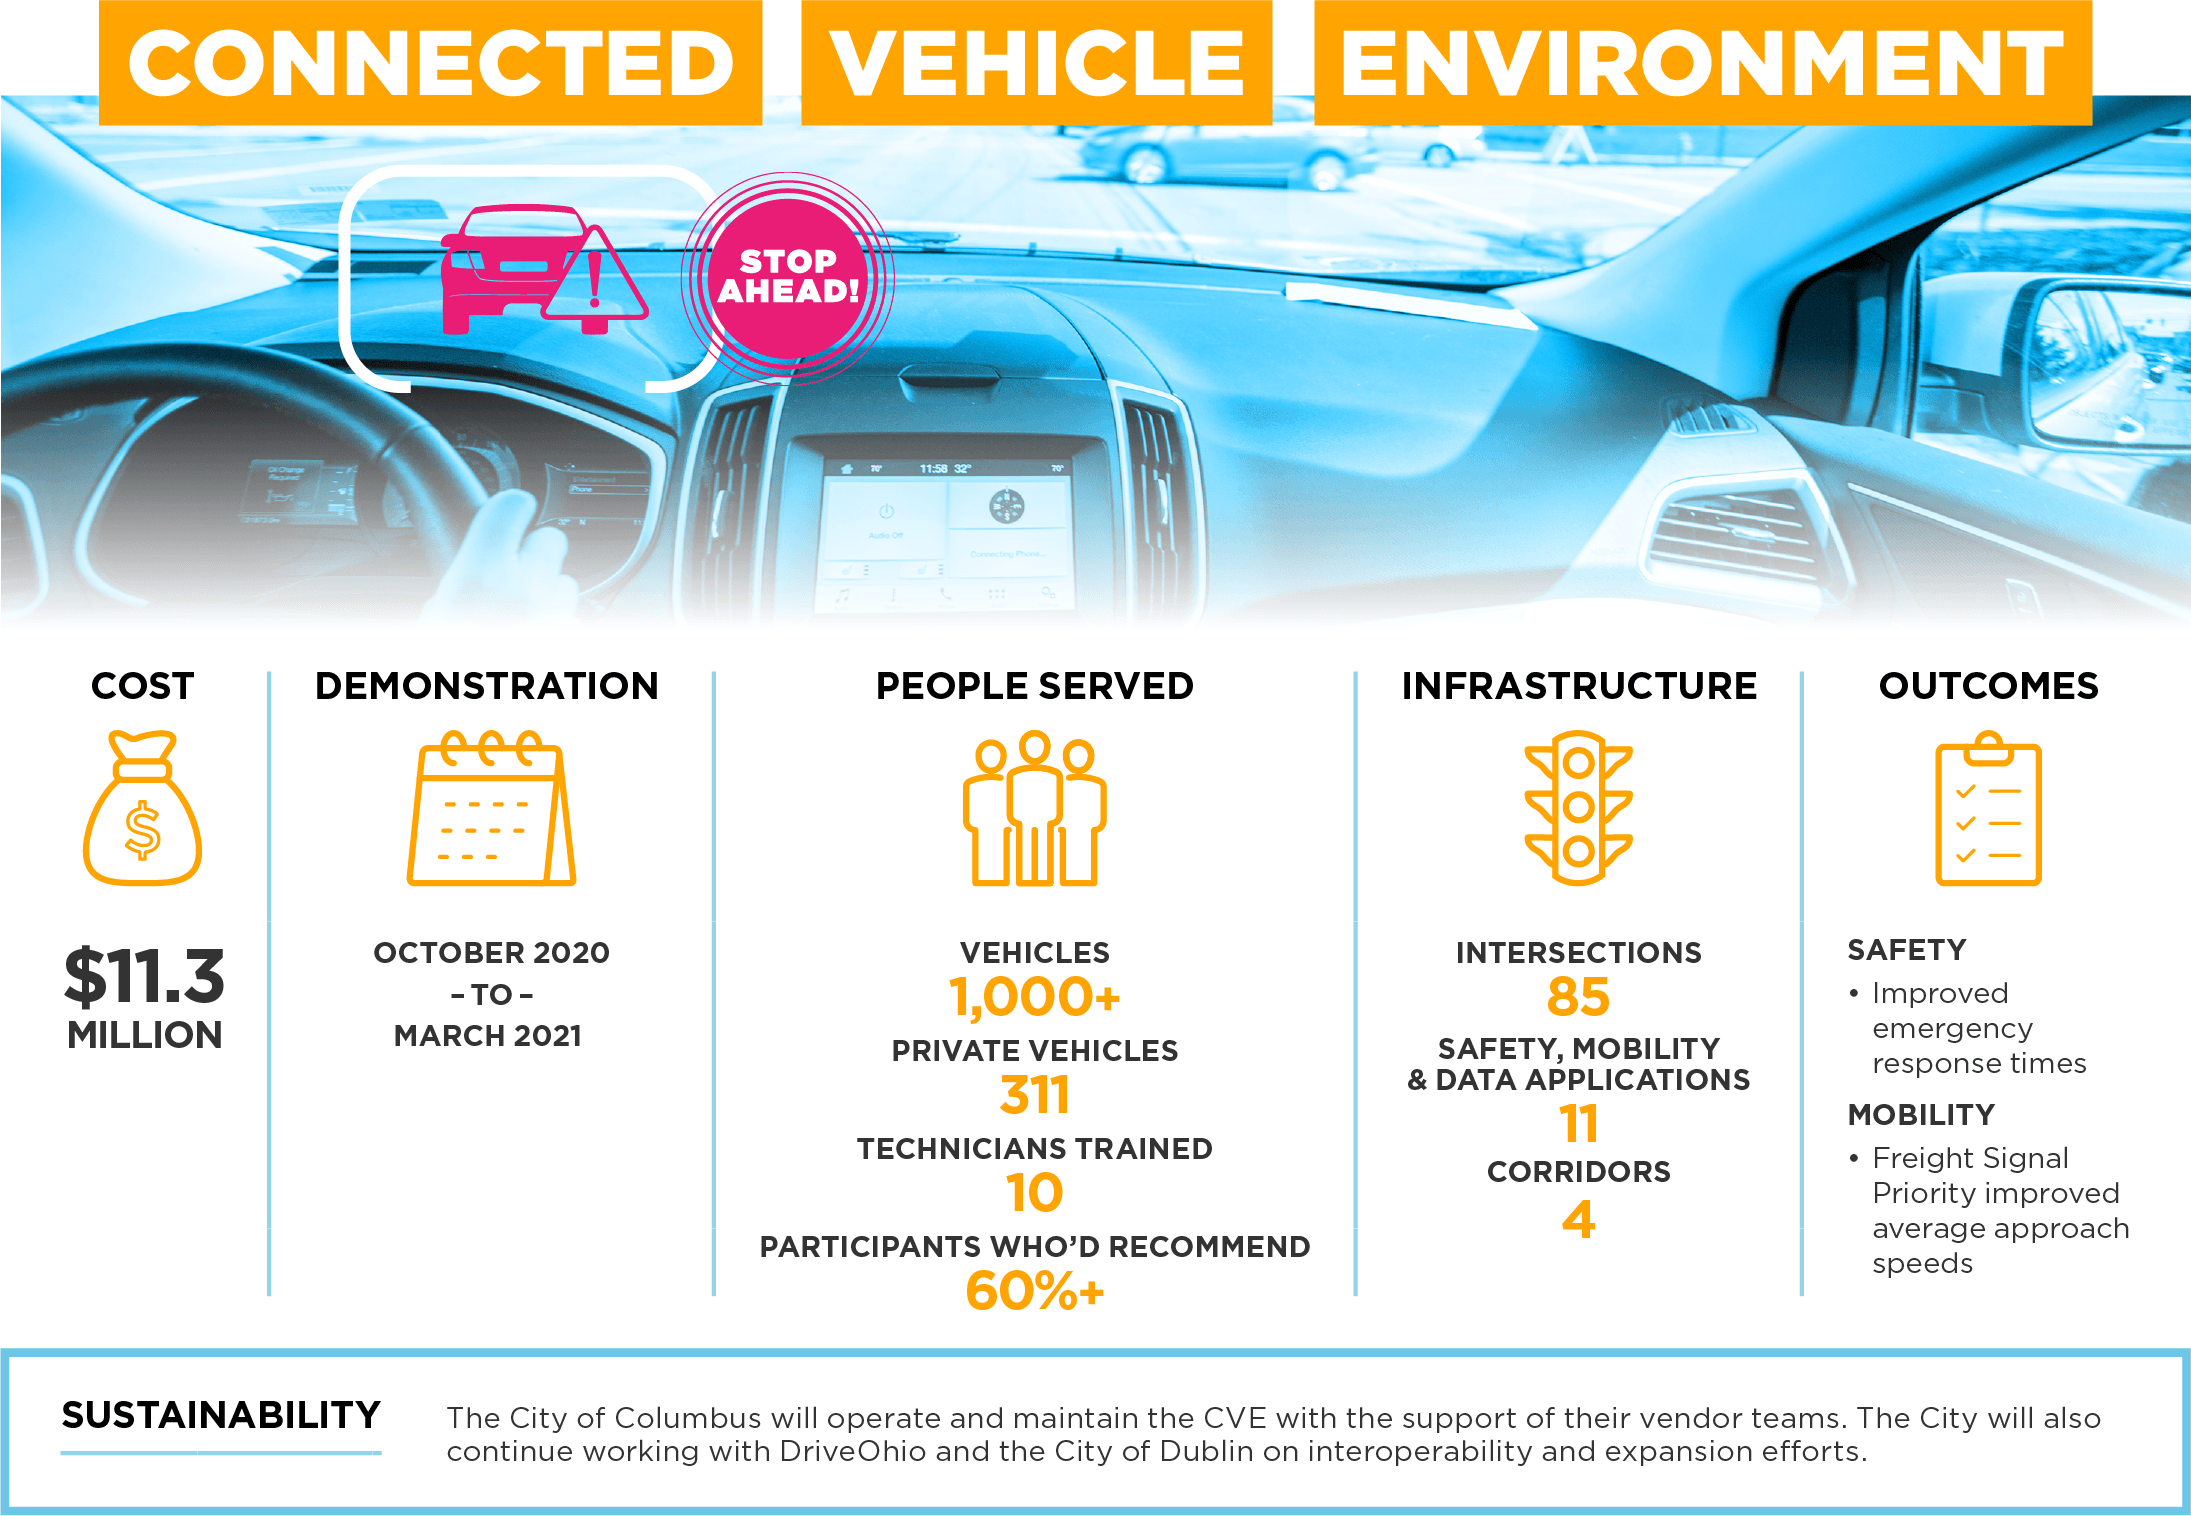 Connected Vehicle Environment